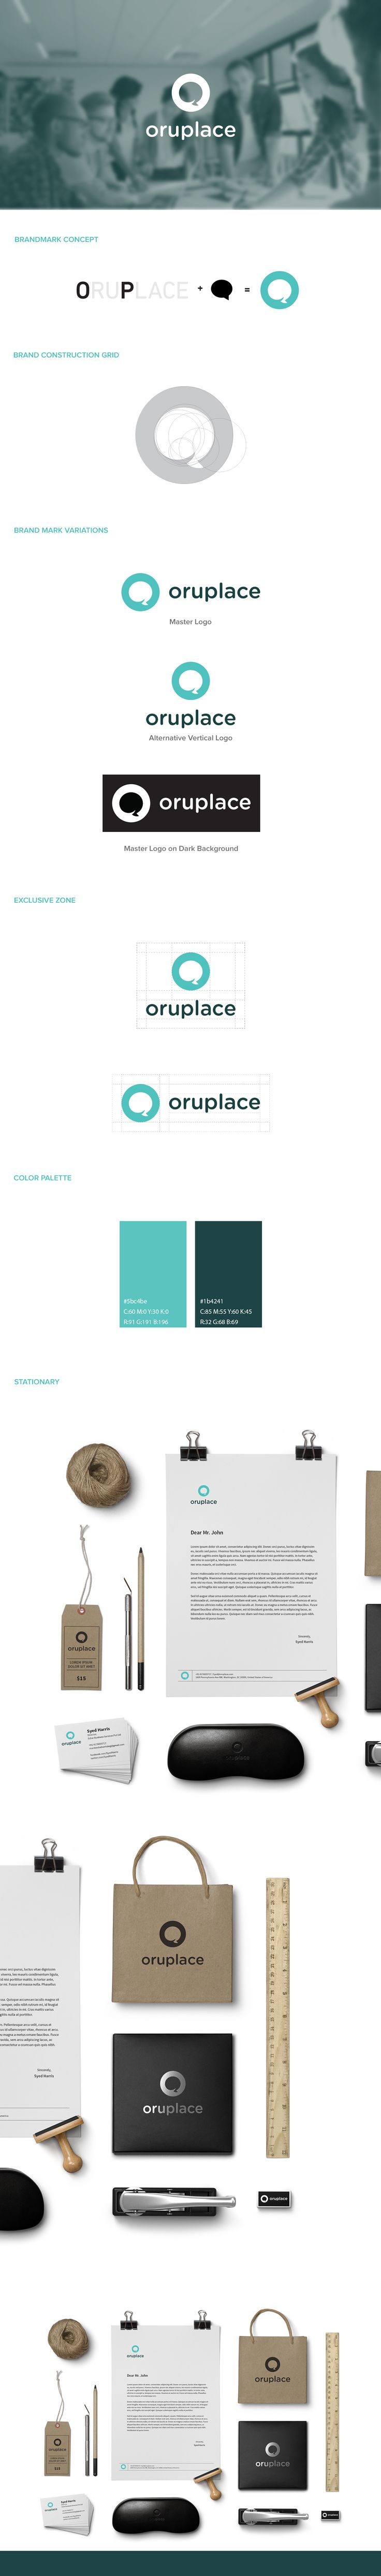 Oruplace Branding and Guidelines on Behance